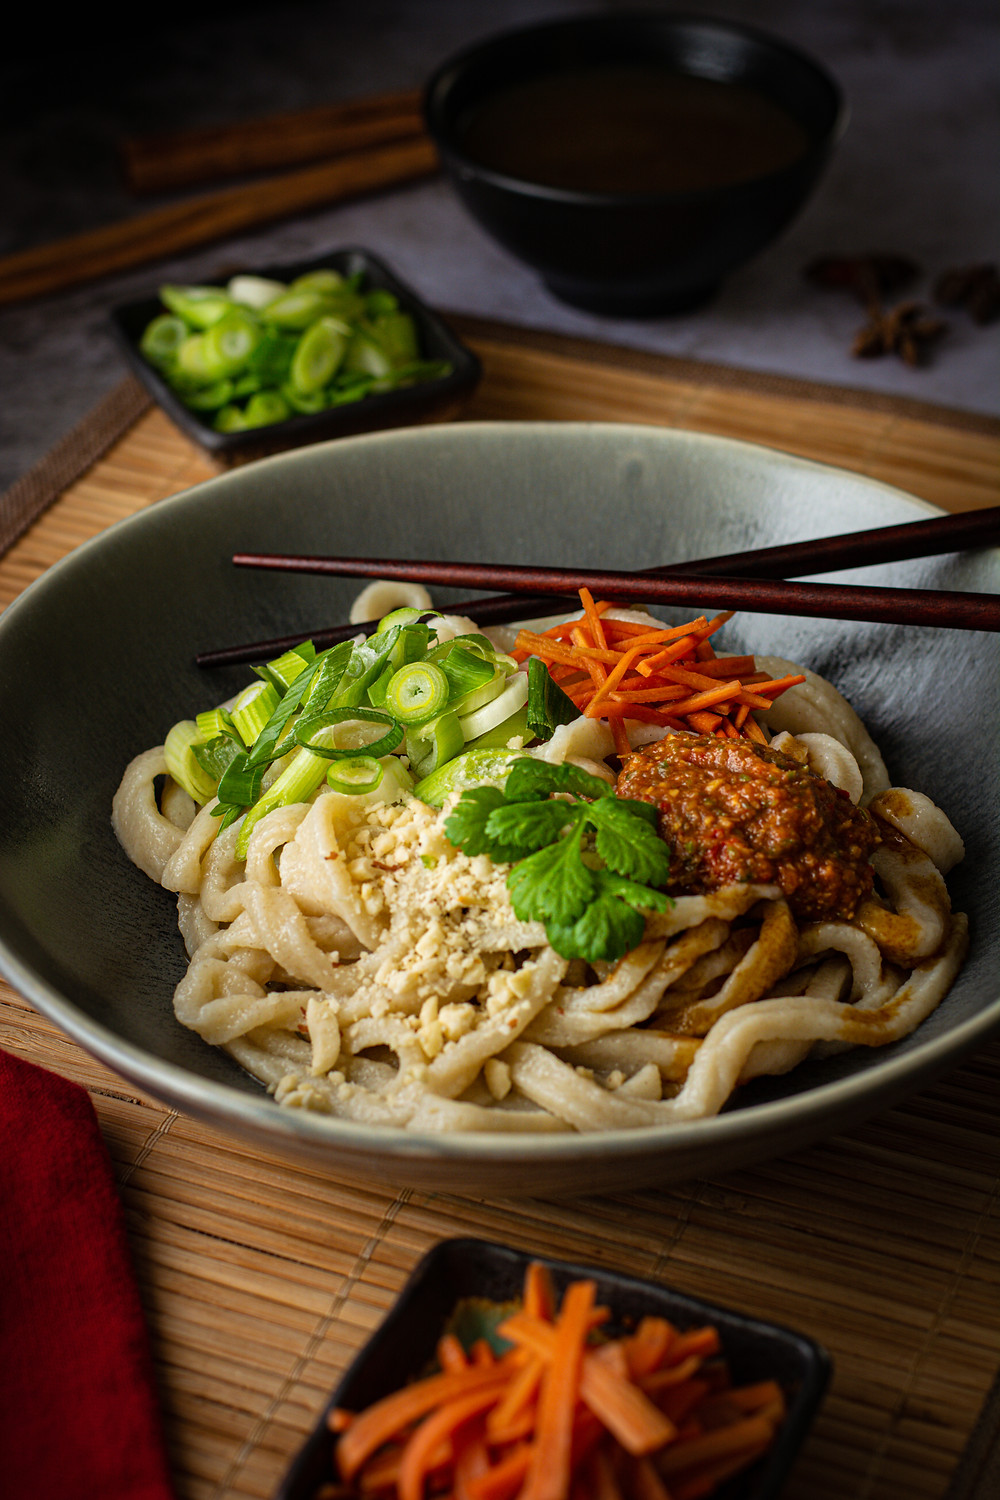 Hot Dry Noodles (RE GAN MIAN, 热干面) in the bowl